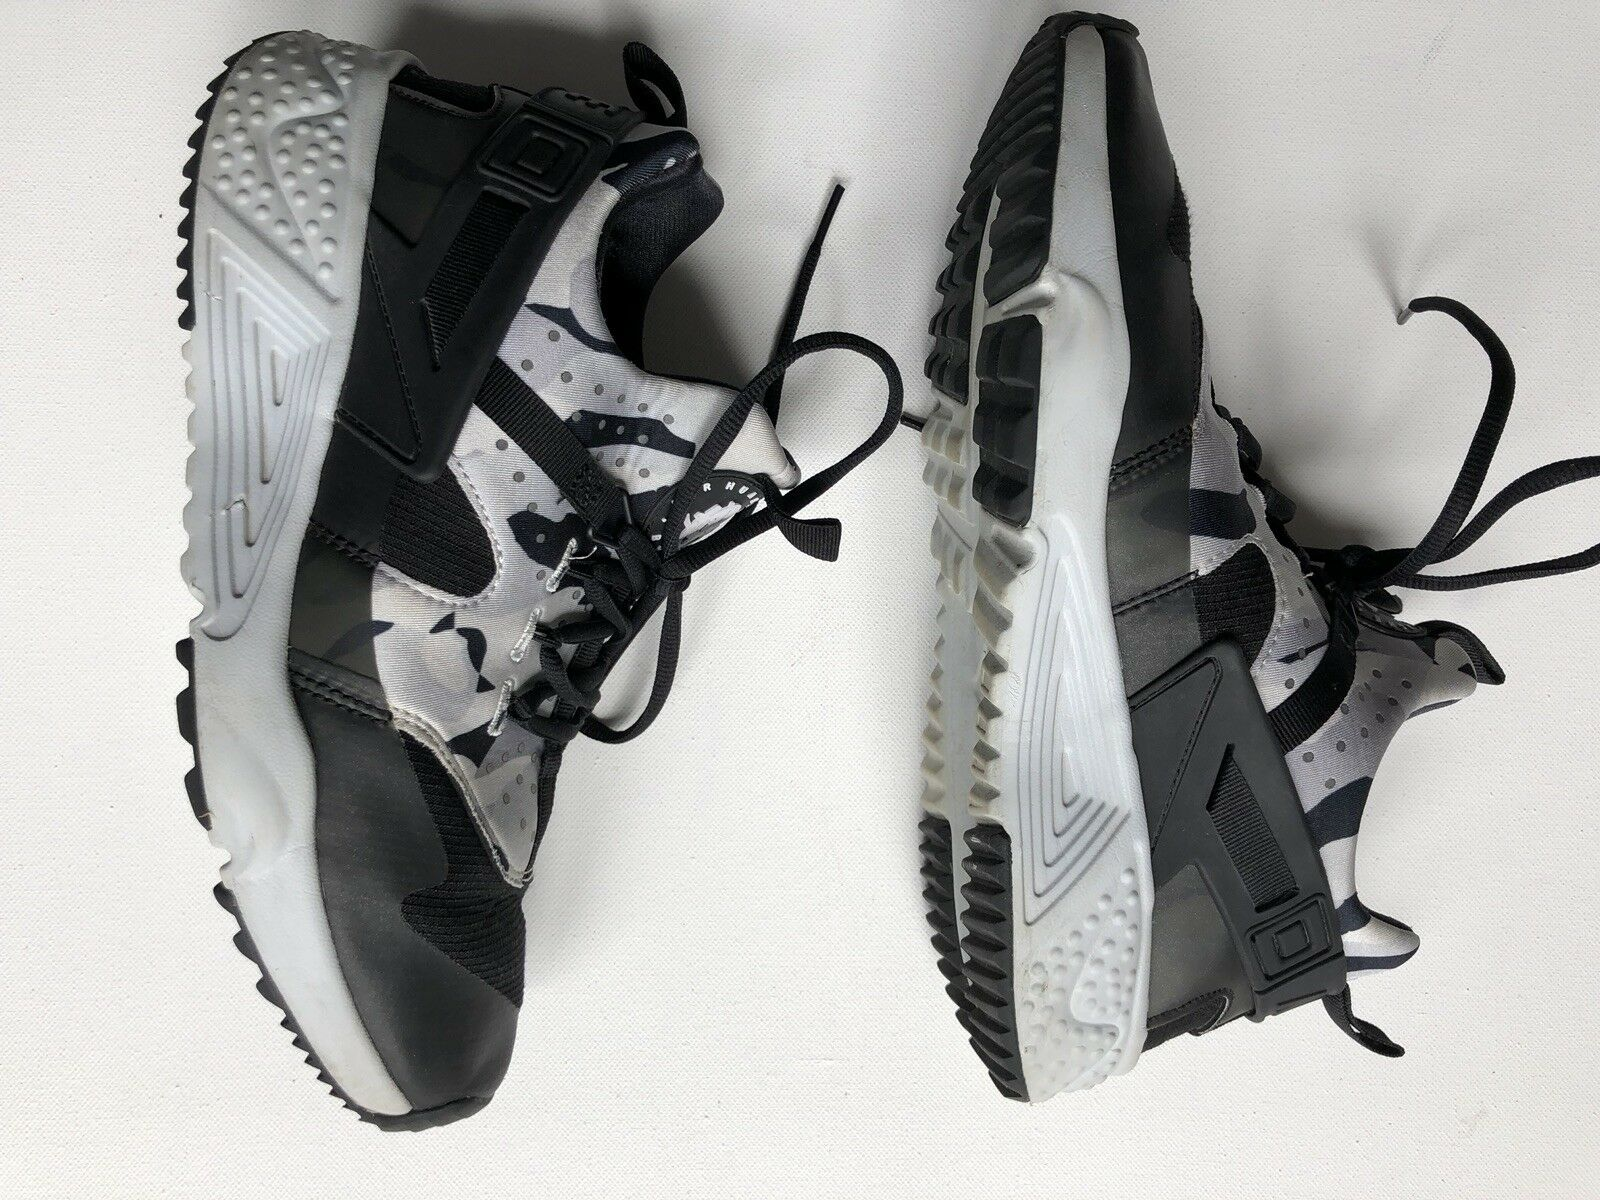 NIKE AIR HUARACHE UTILITY RUNNER Platinum Cam BLACK MENS NEW 806807 001  Comfortable Seasonal clearance sale